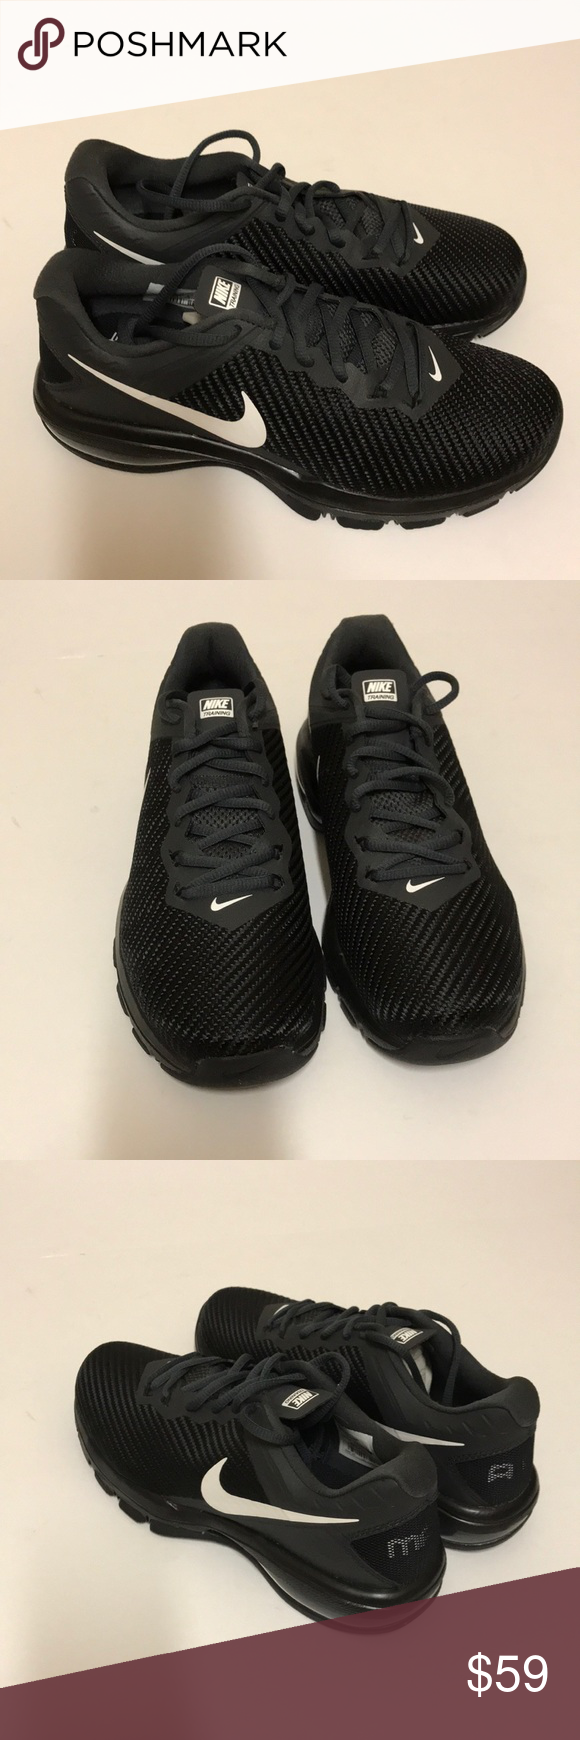 Nike Air Max Full Ride TR 1.5 Size 6 Black White New In Box